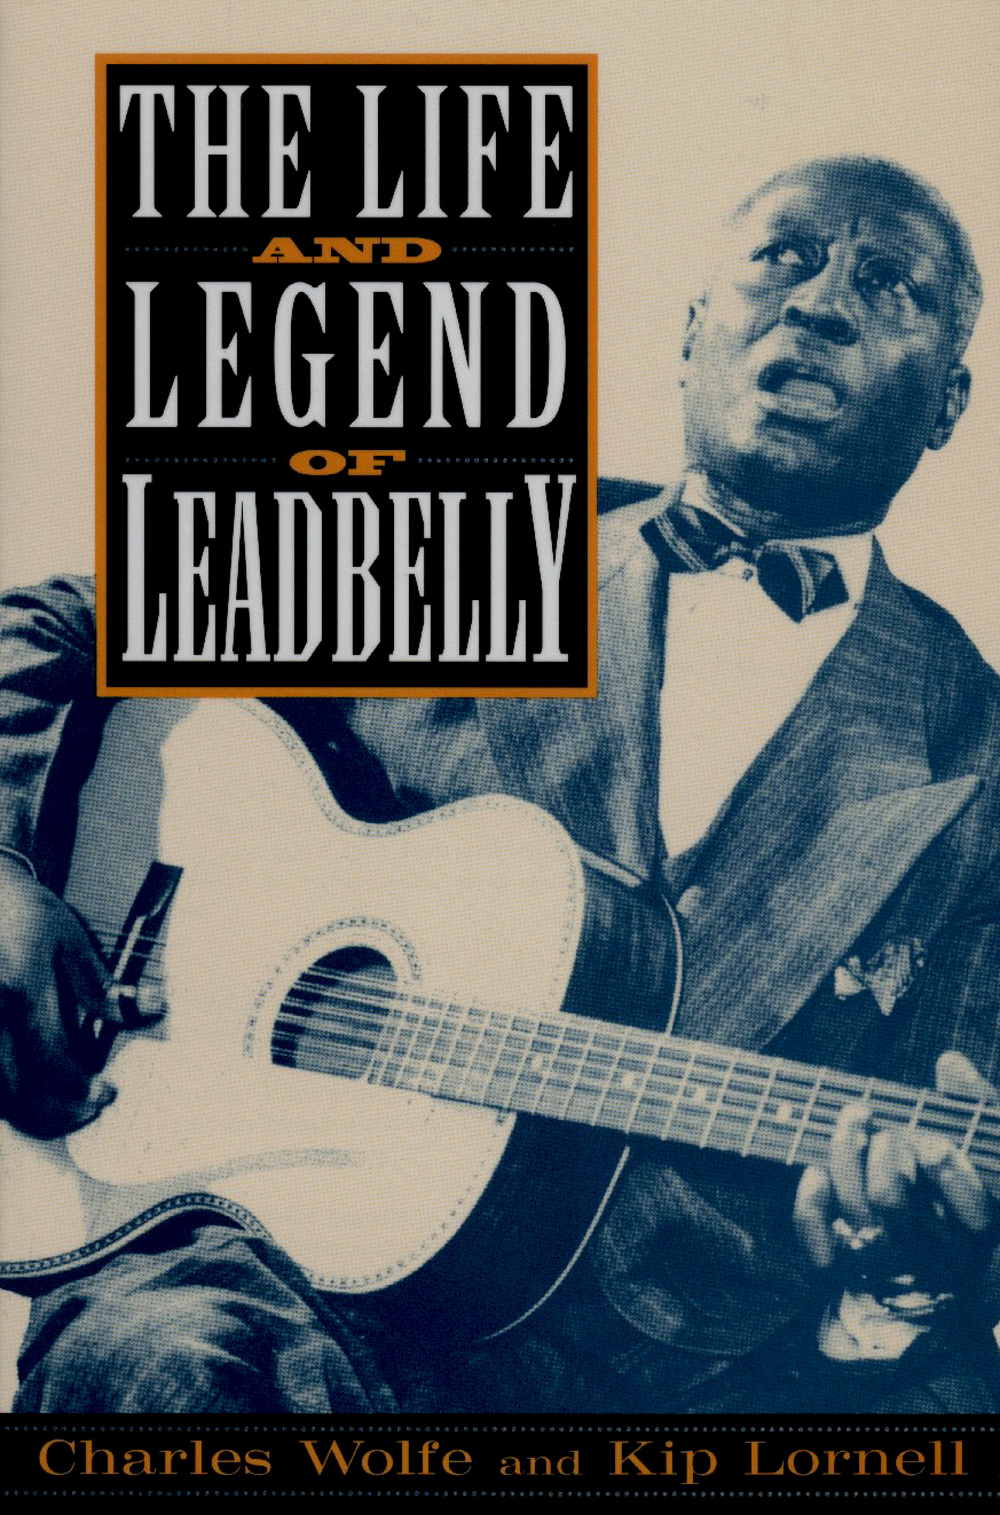 From the Archives:  Biography of blues musician, Leadbelly written by Charles Wolfe.  Museum Collection and Library.